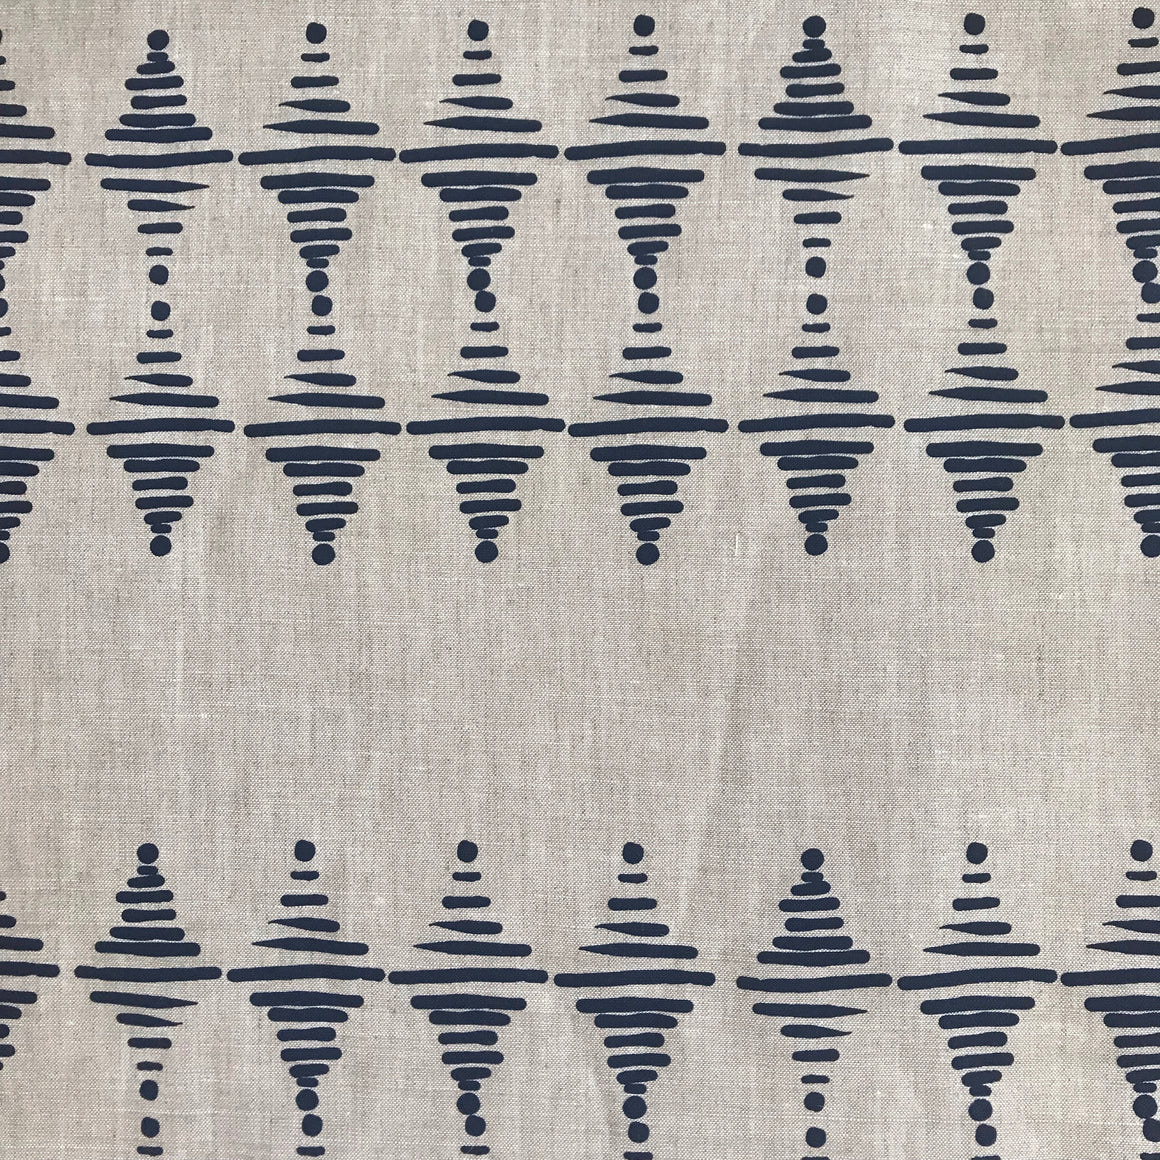 greige textiles micro batch textiles hand printed in California Stacked in indigo on oatmeal, mix with vintage indigo